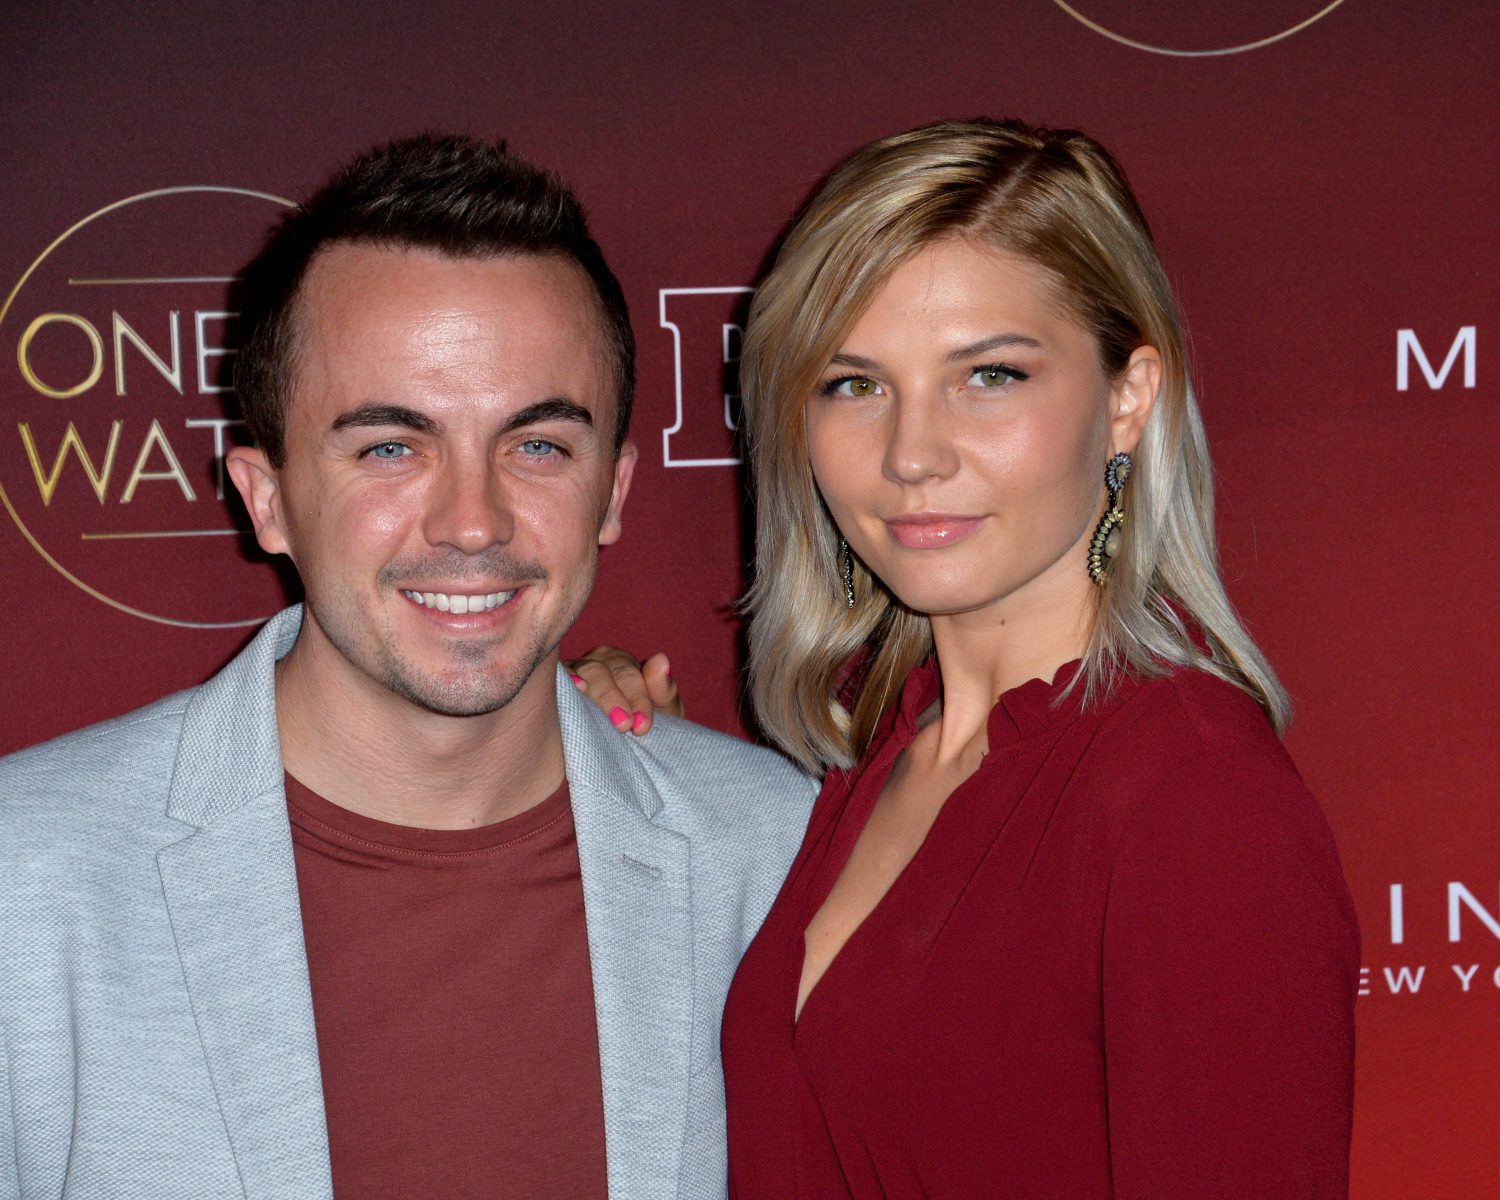 Malcolm in the Middle's Frankie Muniz Is Engaged